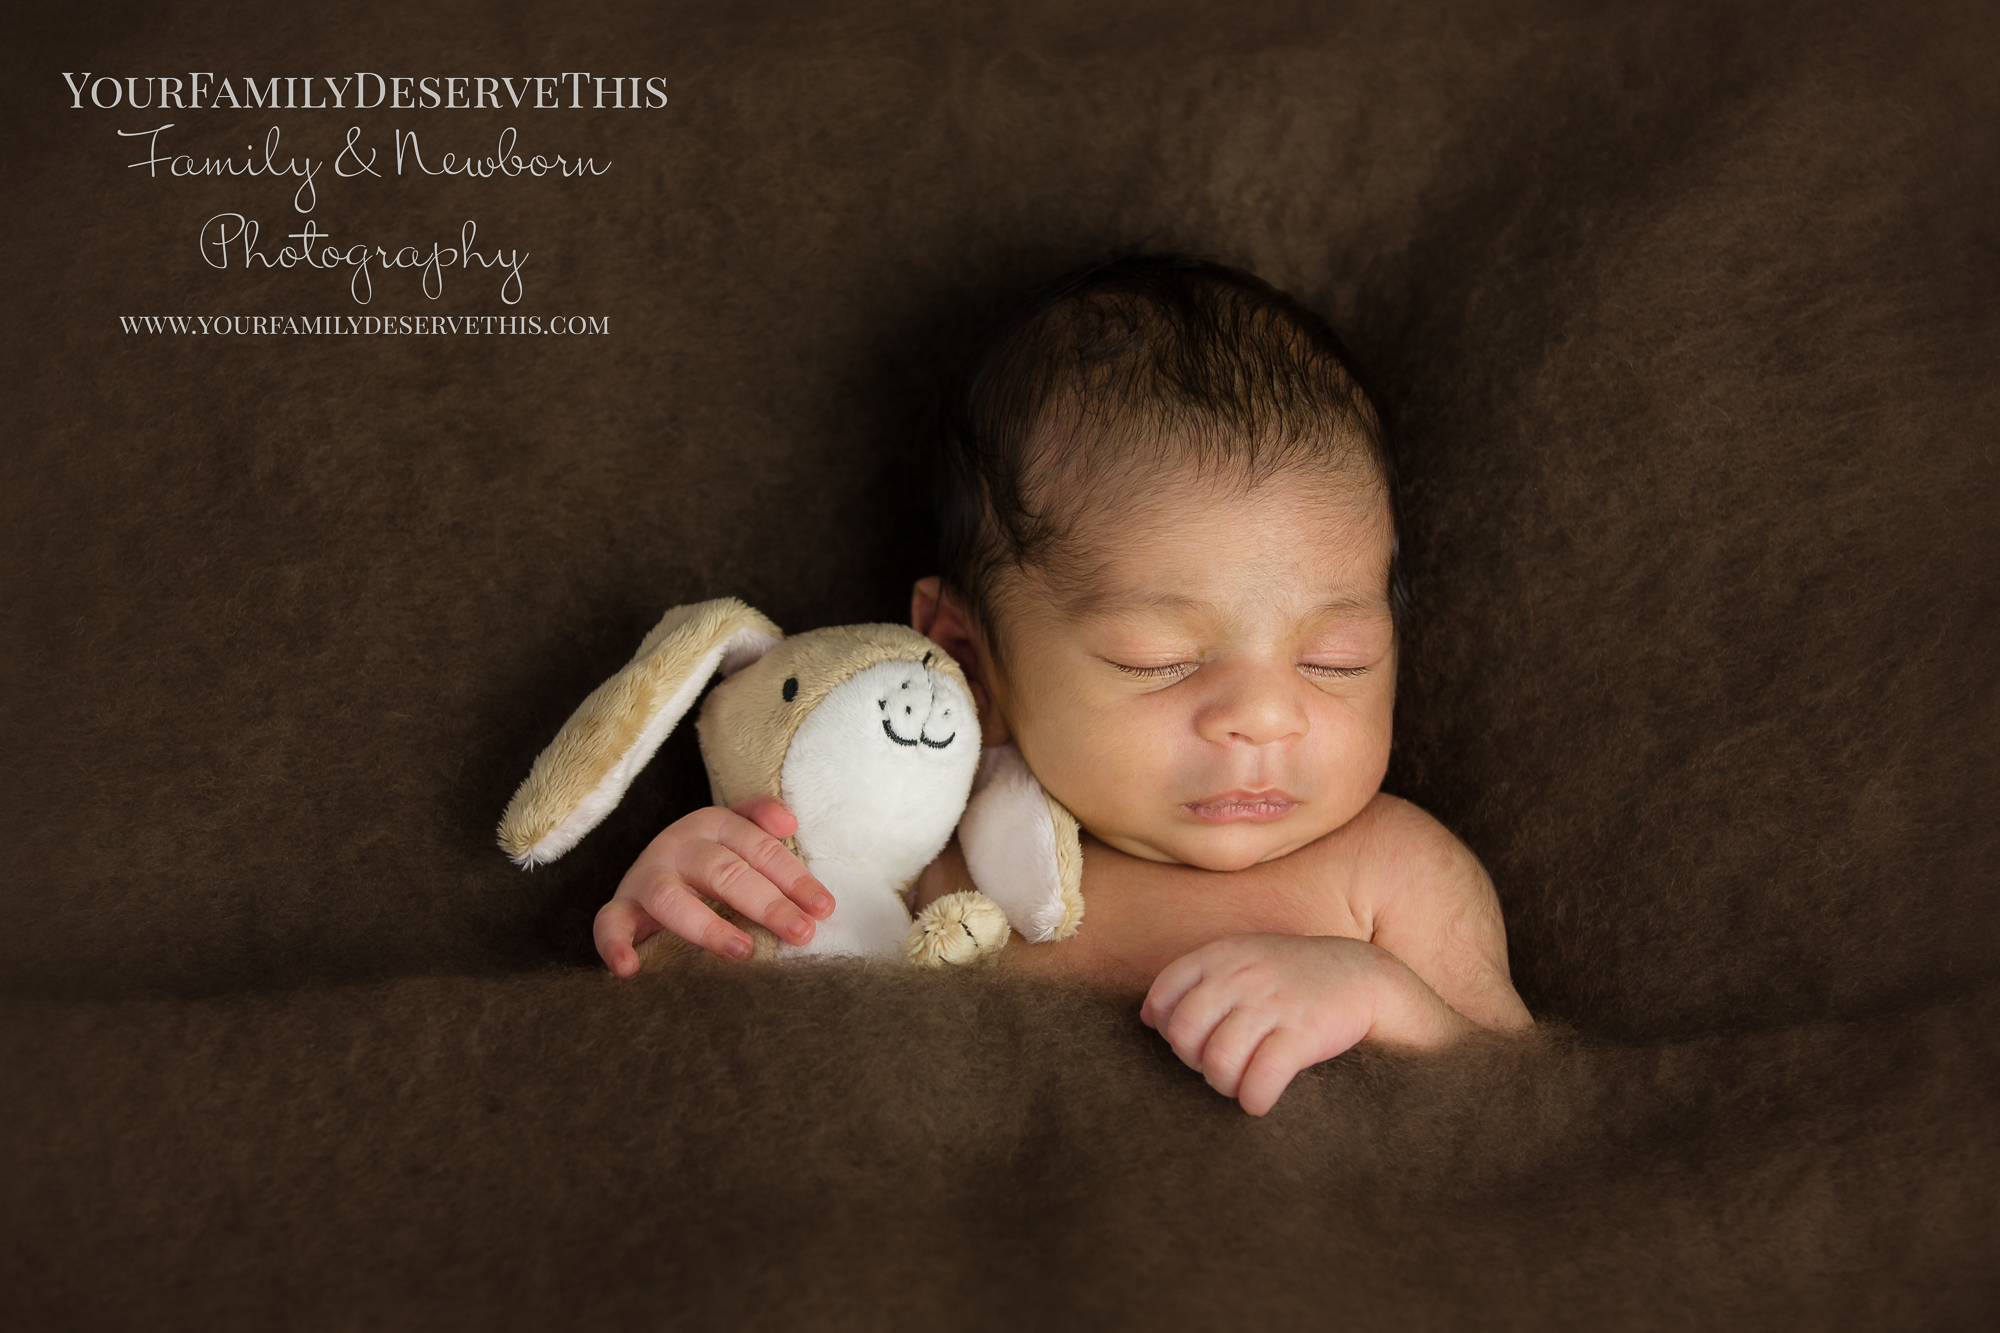 Bring your newborn baby's favourite cuddly toy to their newborn photoshoot  www.yourfamilydeservethis.com